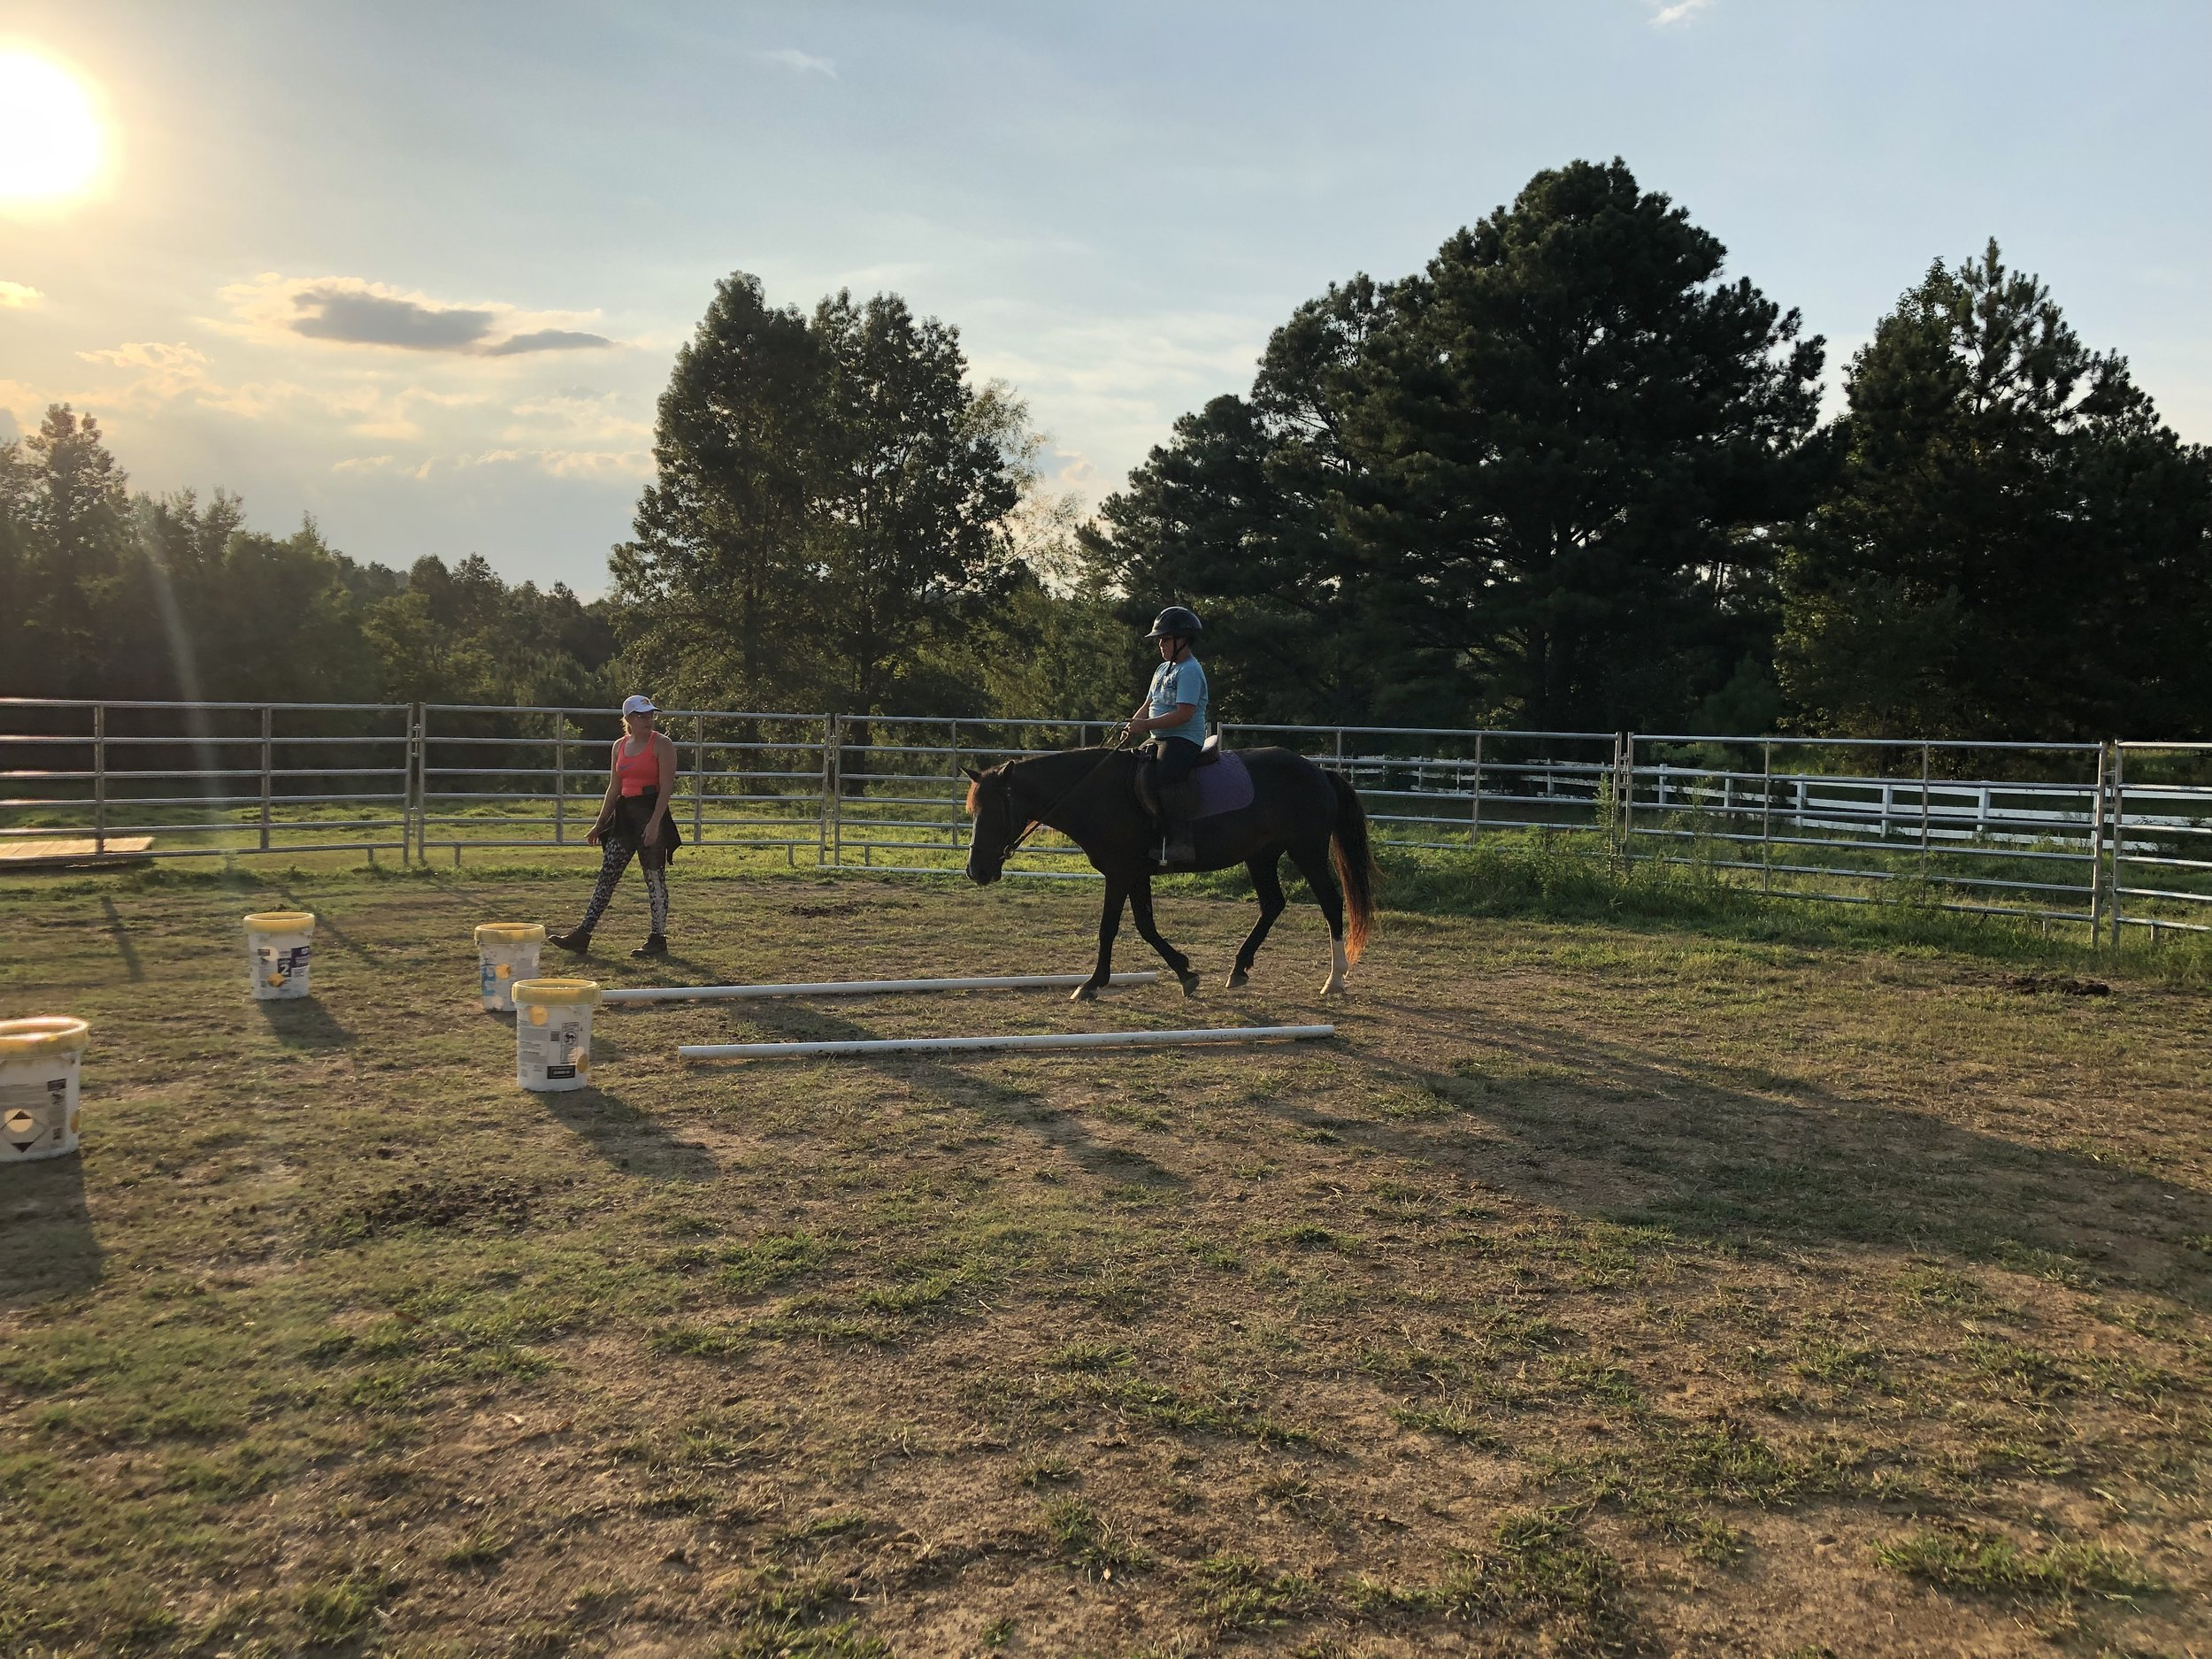 Book a Lesson. Help a Cause. - 50% of proceeds from riding lessons support our mission to reach traumatized children, and families through Equine Therapy.Cost $50